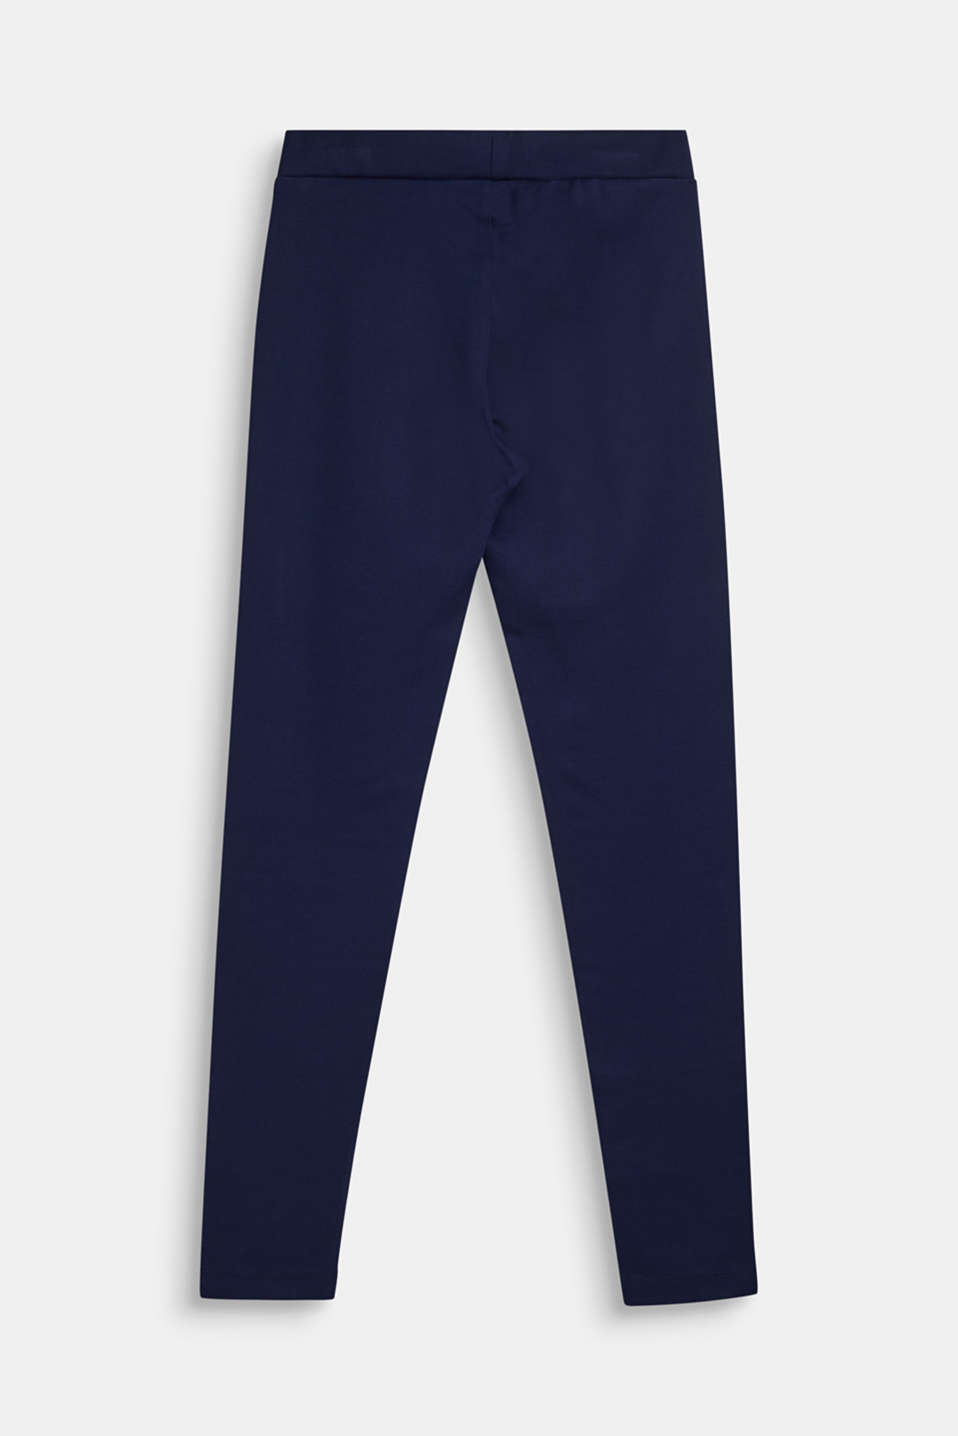 Compact stretch jersey trousers, LCNAVY, detail image number 1